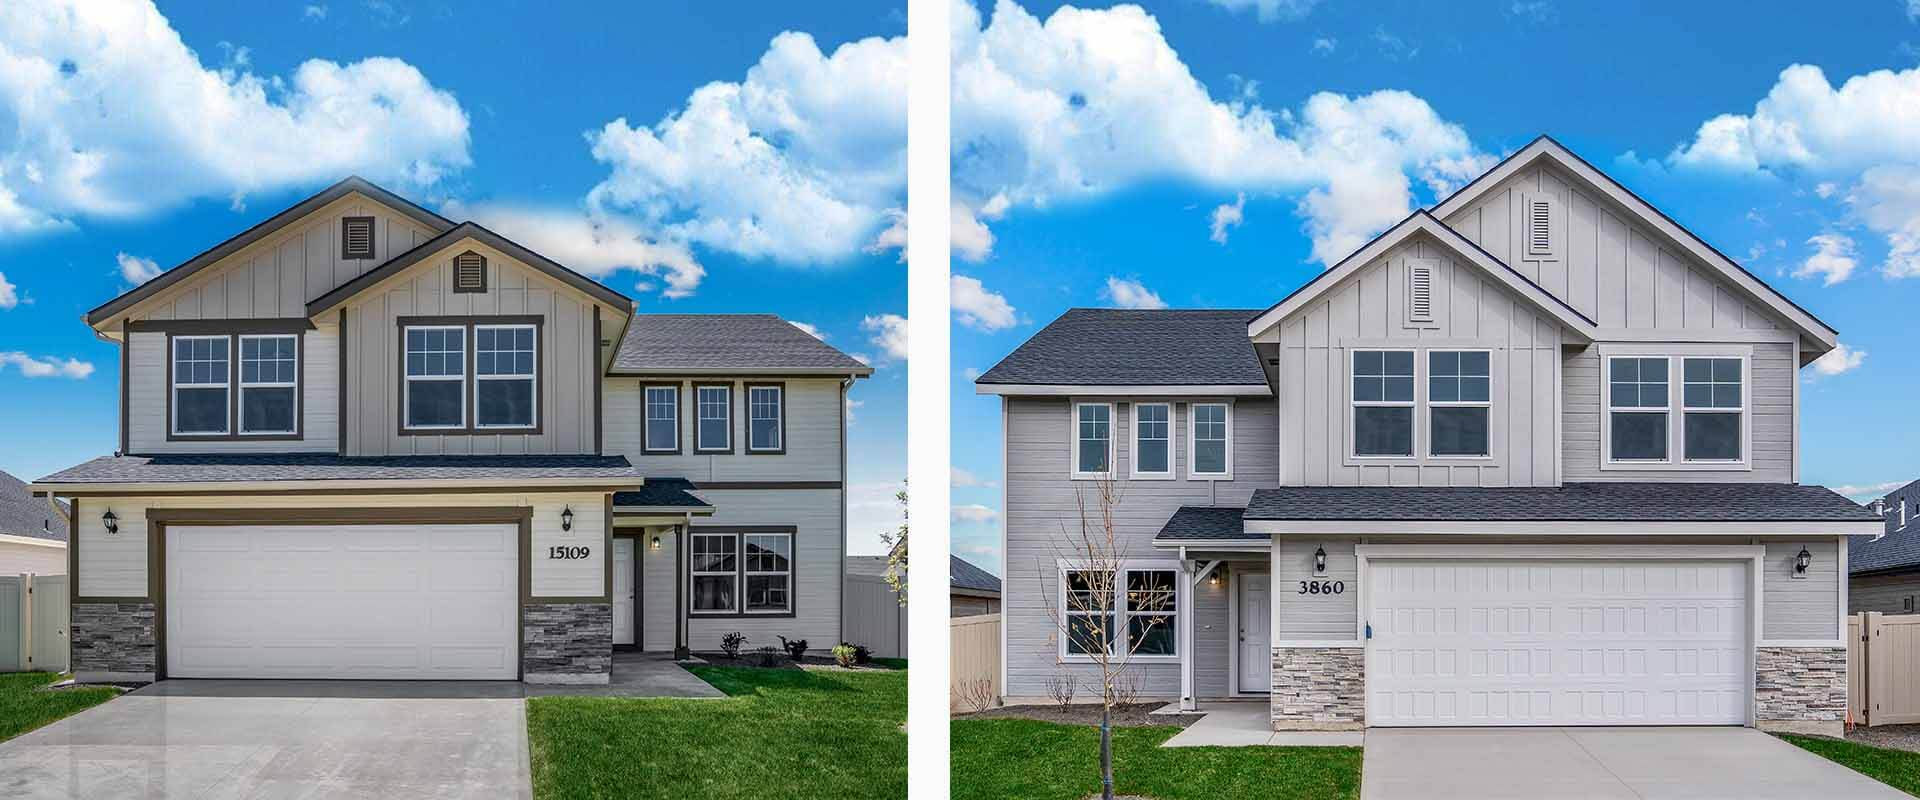 Trinity_Hubble_Homes_New_Homes_Boise.jpg